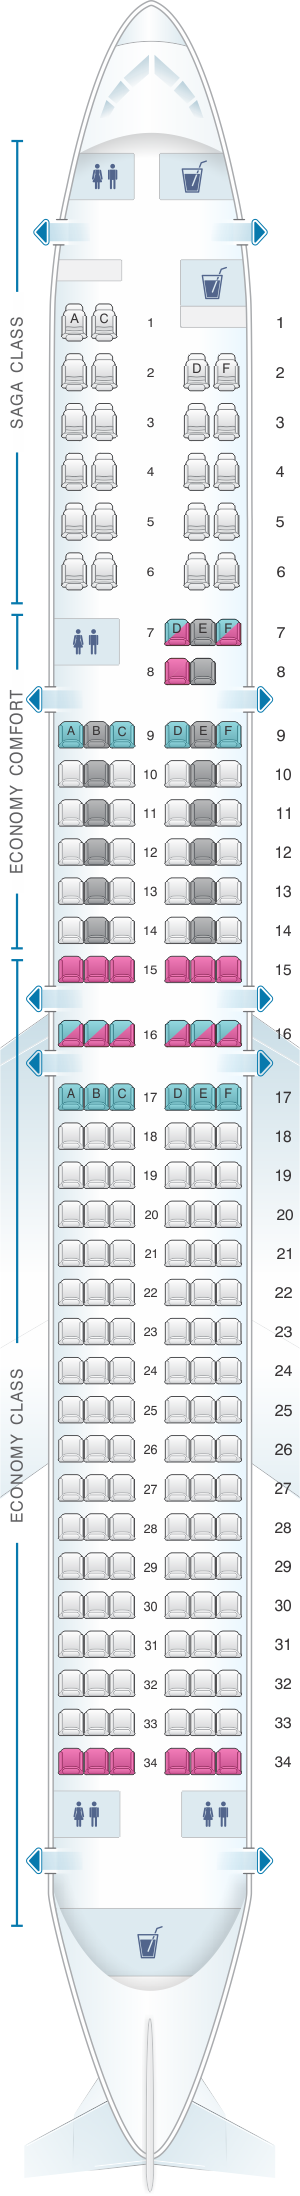 Seat map for Icelandair Boeing B757 200